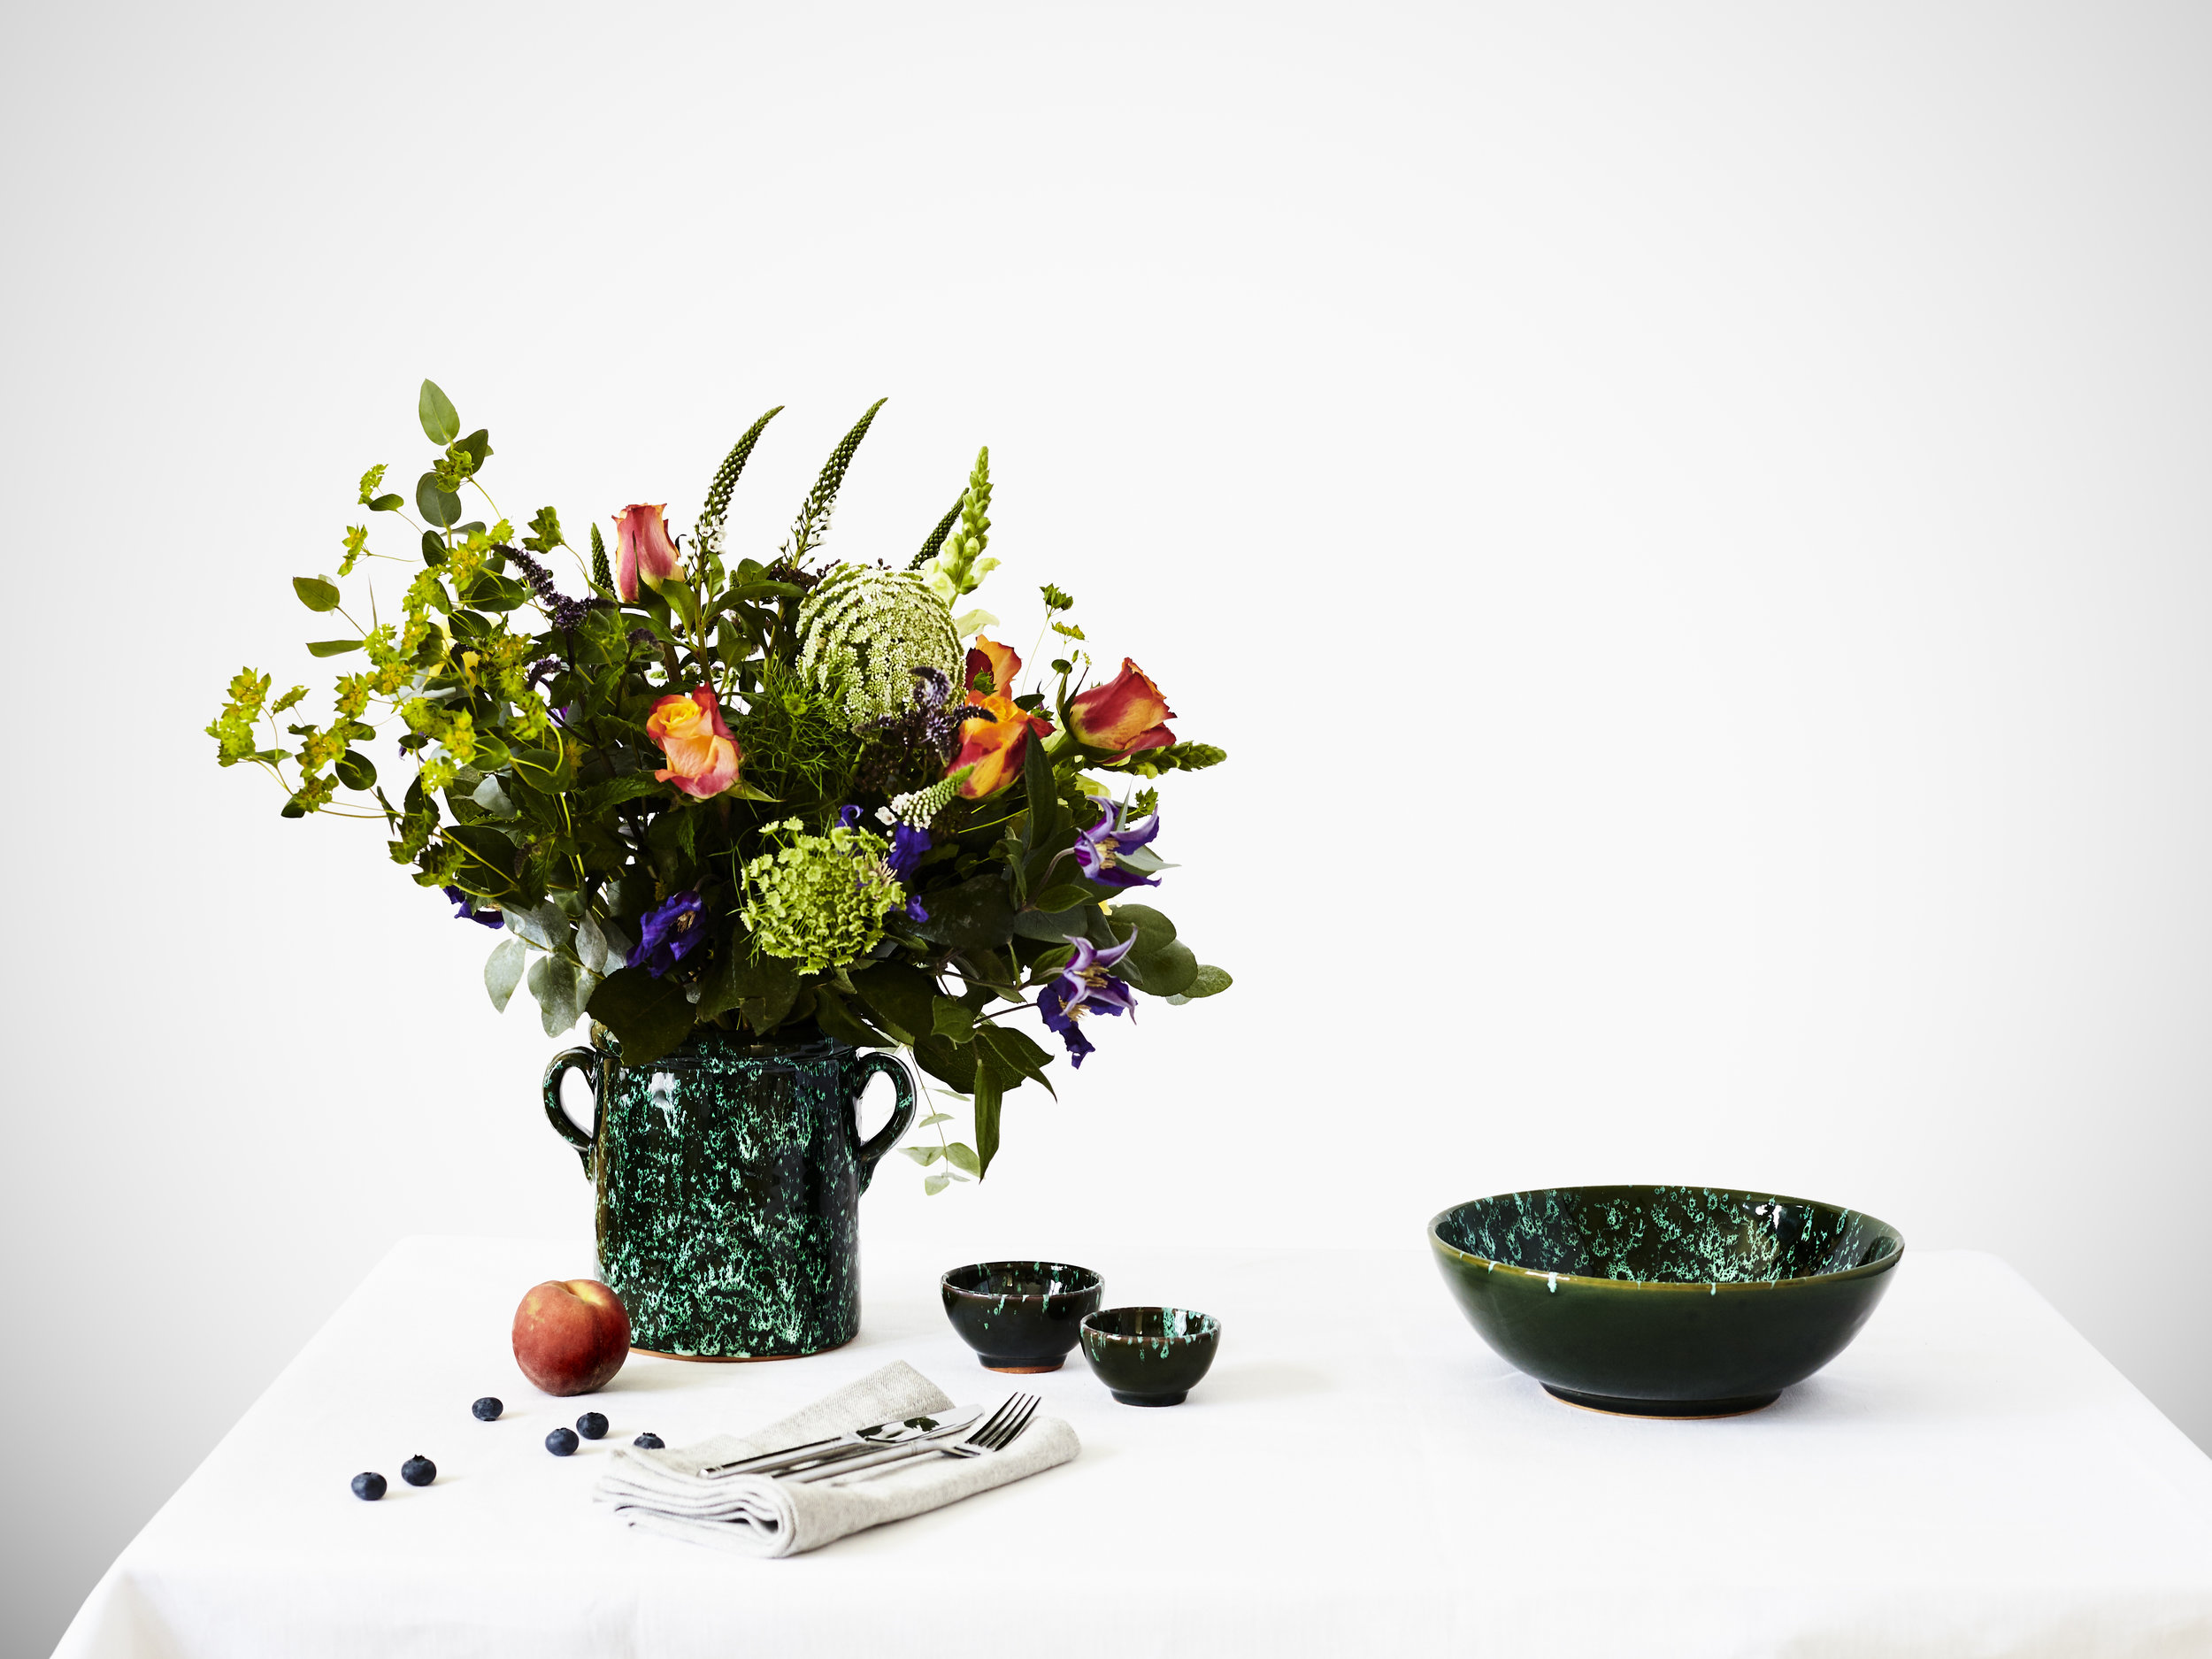 Italian Splatter Ceramic Planter And Bowls.jpg